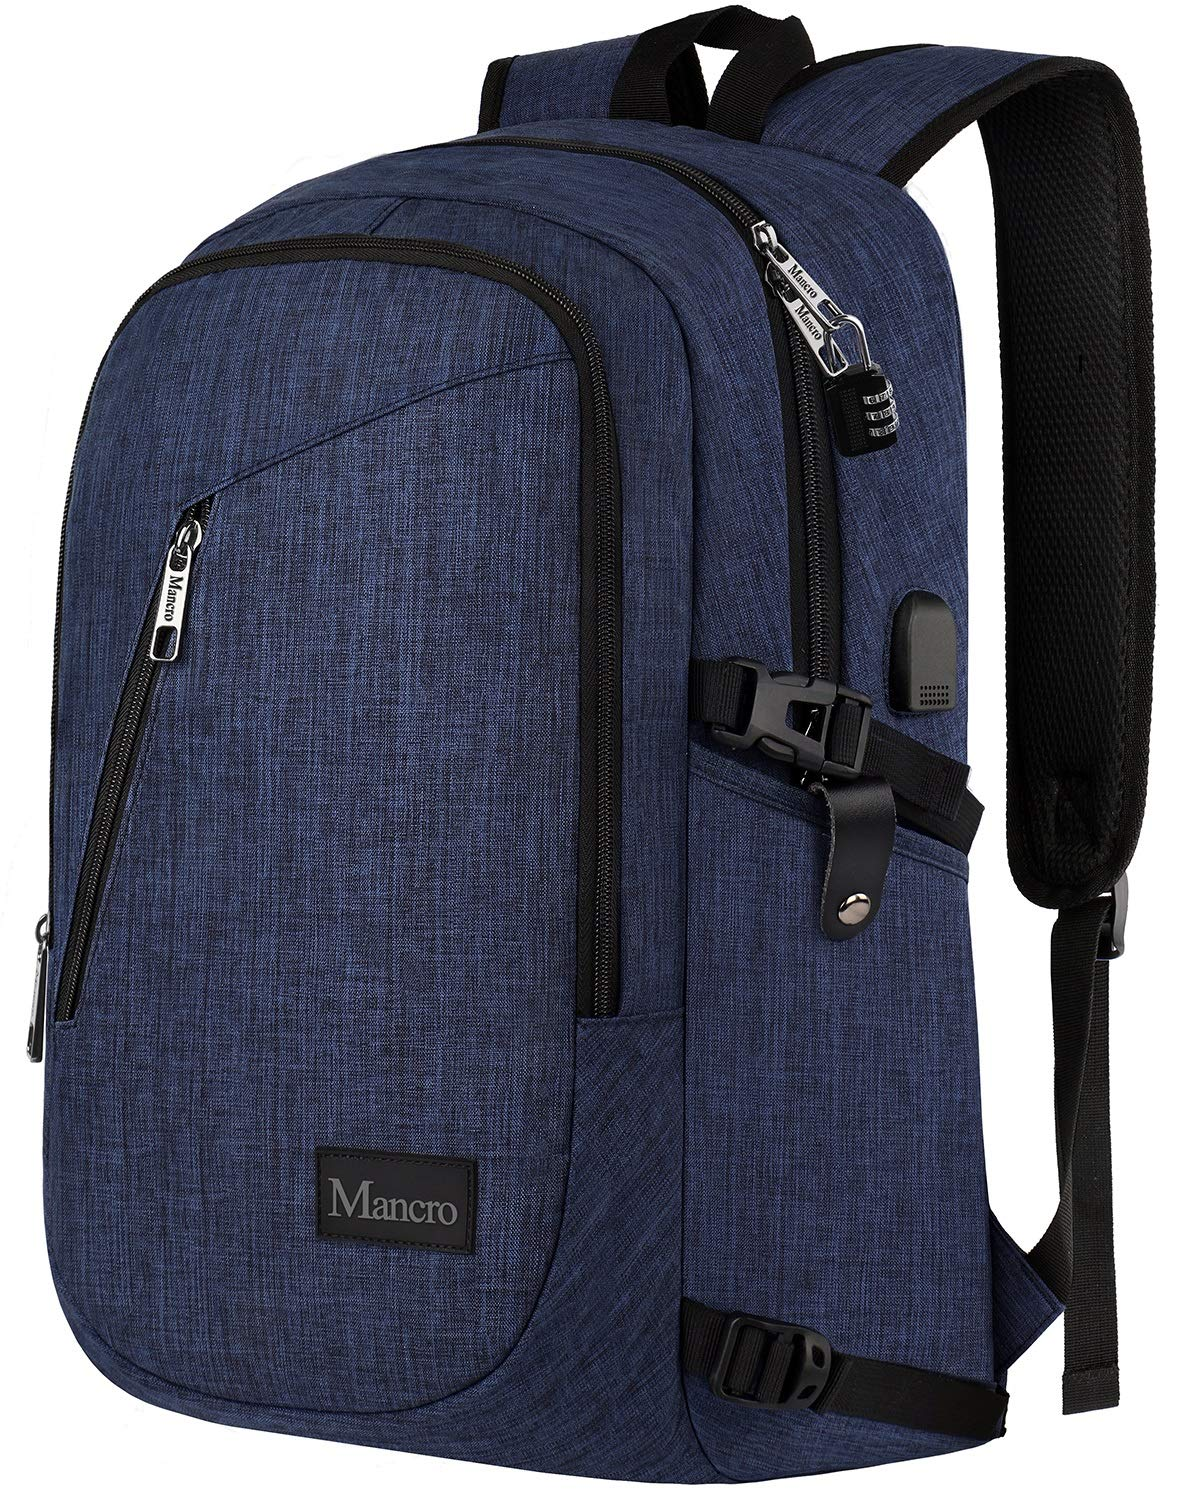 College Backpack, Business Slim Laptop Backpack, Mancro Anti-Theft Water Resistant Computer Backpack w/USB Charging Port, Lightweight Travel Bag Fit 15.6 Inch Laptops & Tablets in Dark Indigo by Mancro